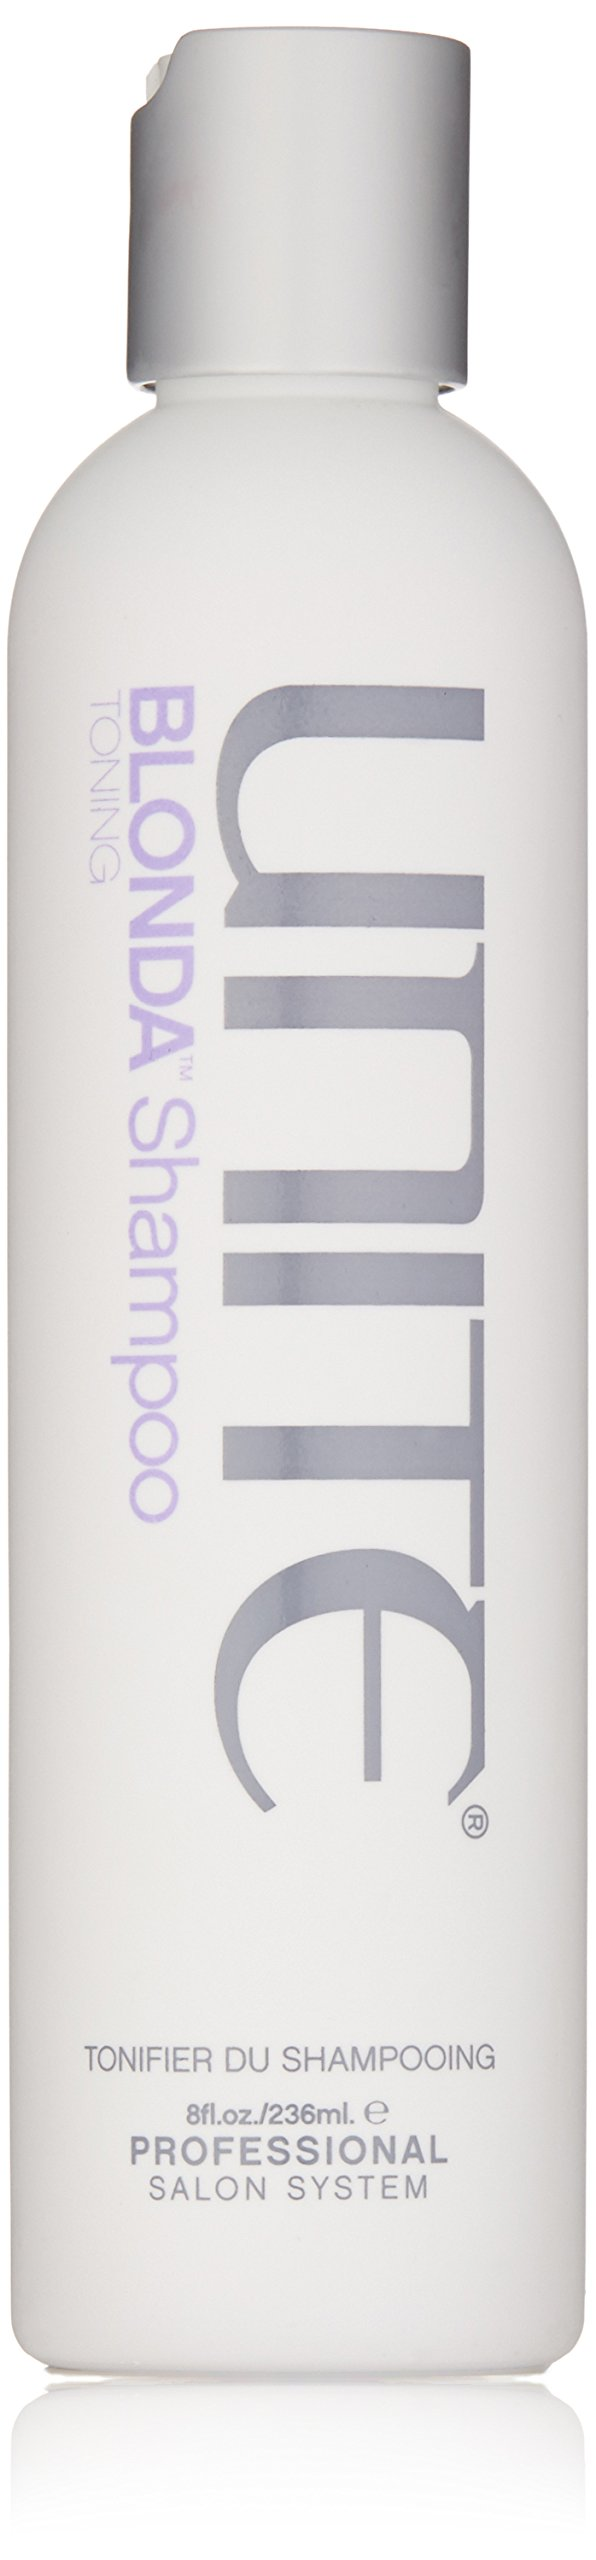 UNITE Hair Blonda Shampoo, 8 Fl oz